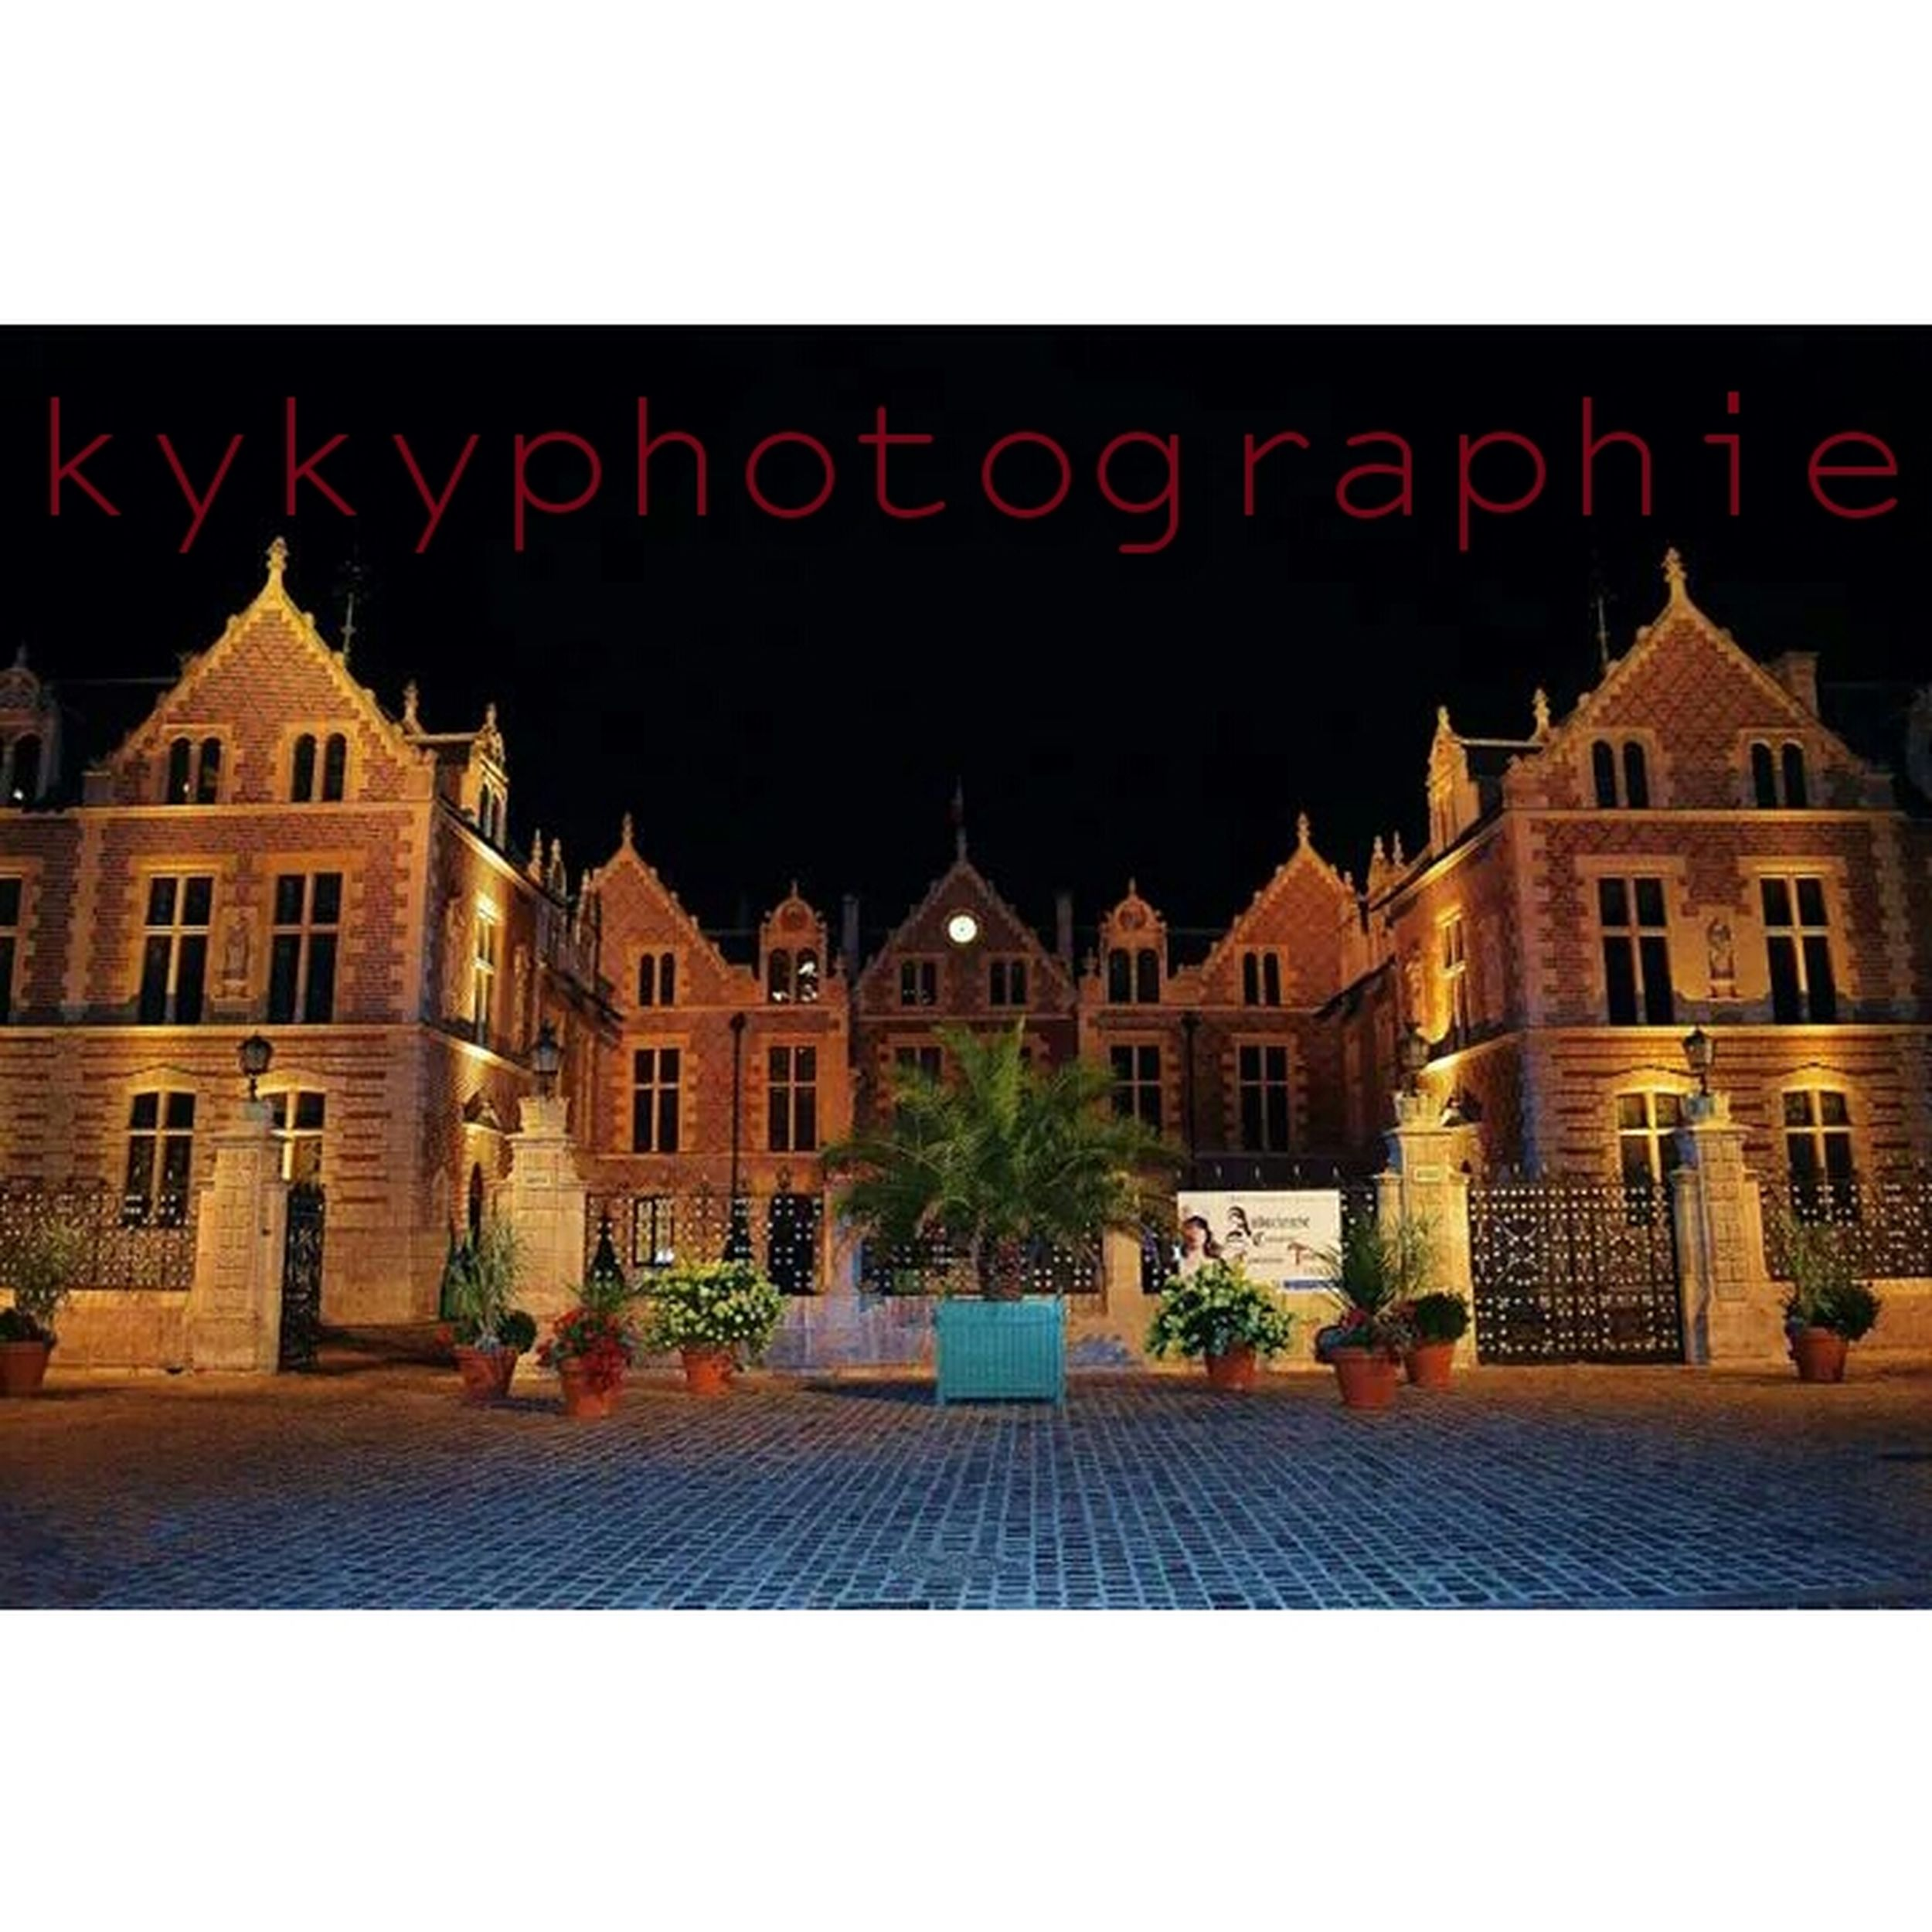 Taking Photos Orleans Mairie Architecture Photo